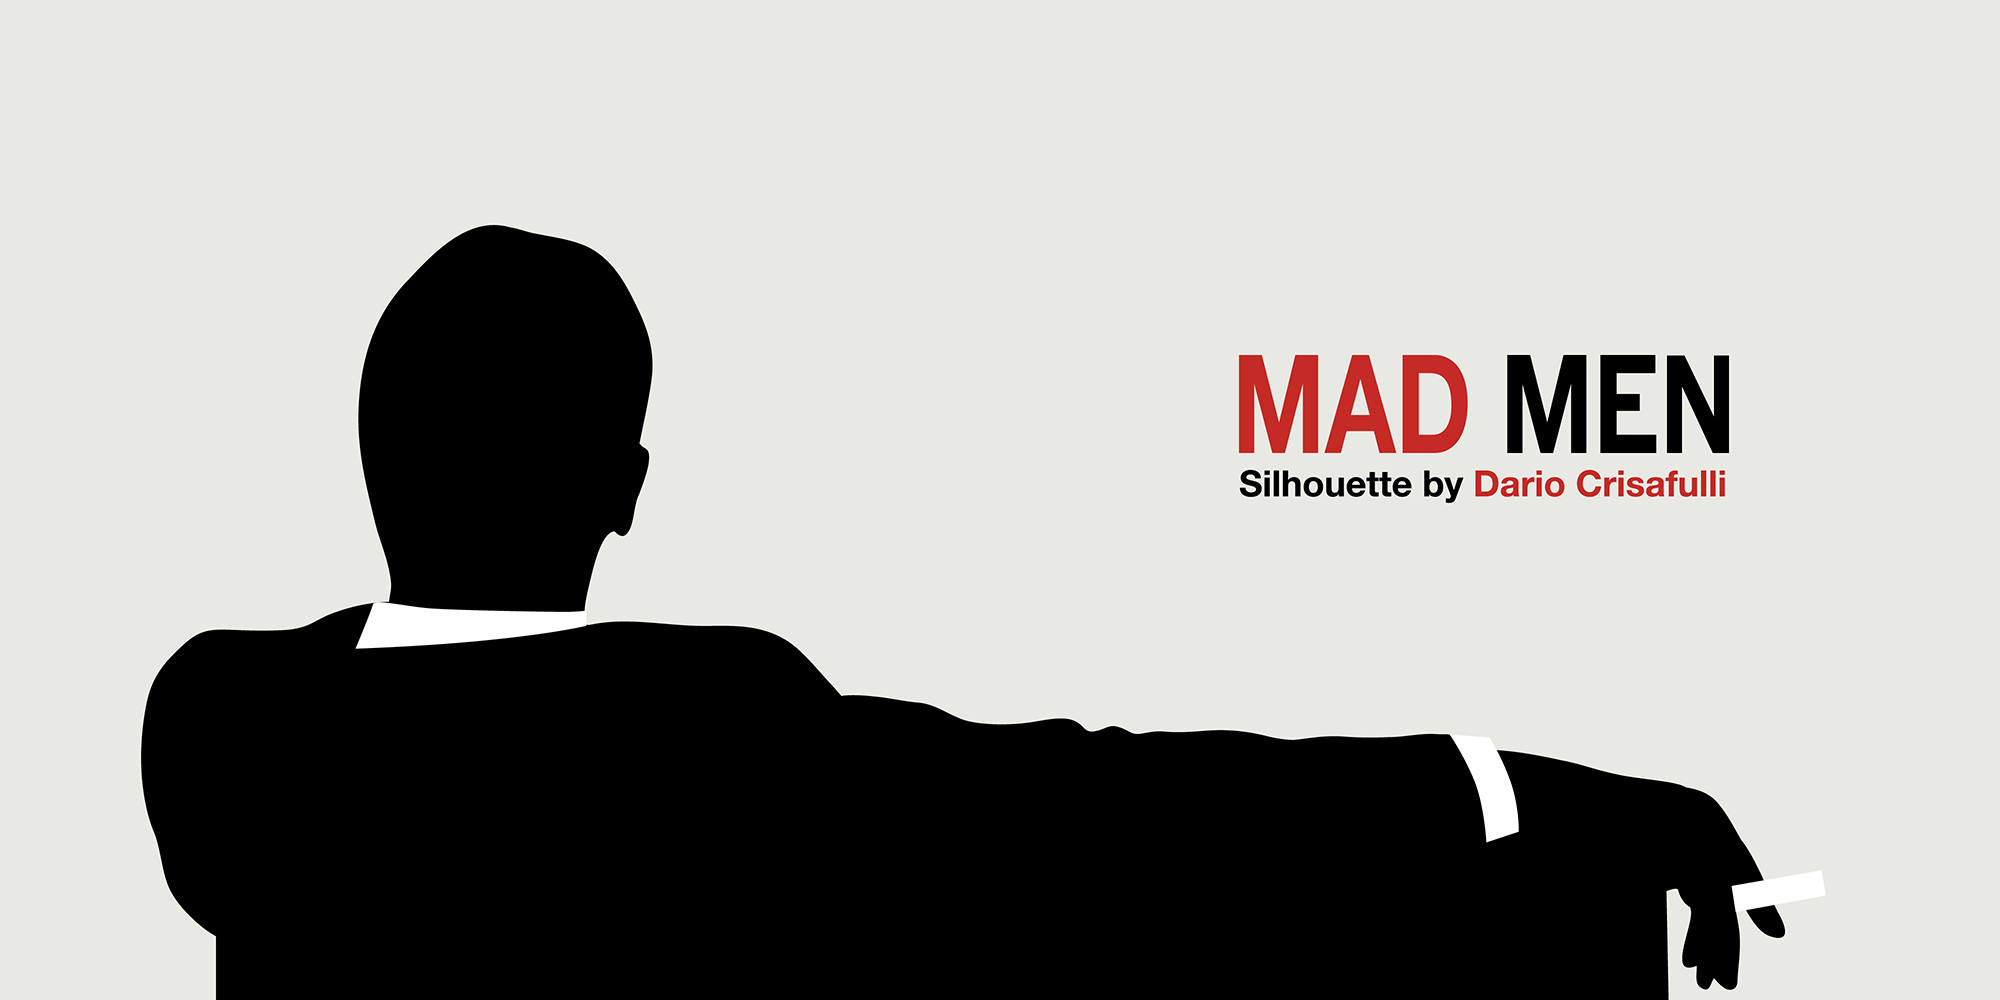 Clipart library: More Like Mad Men Silhouette Vector by.